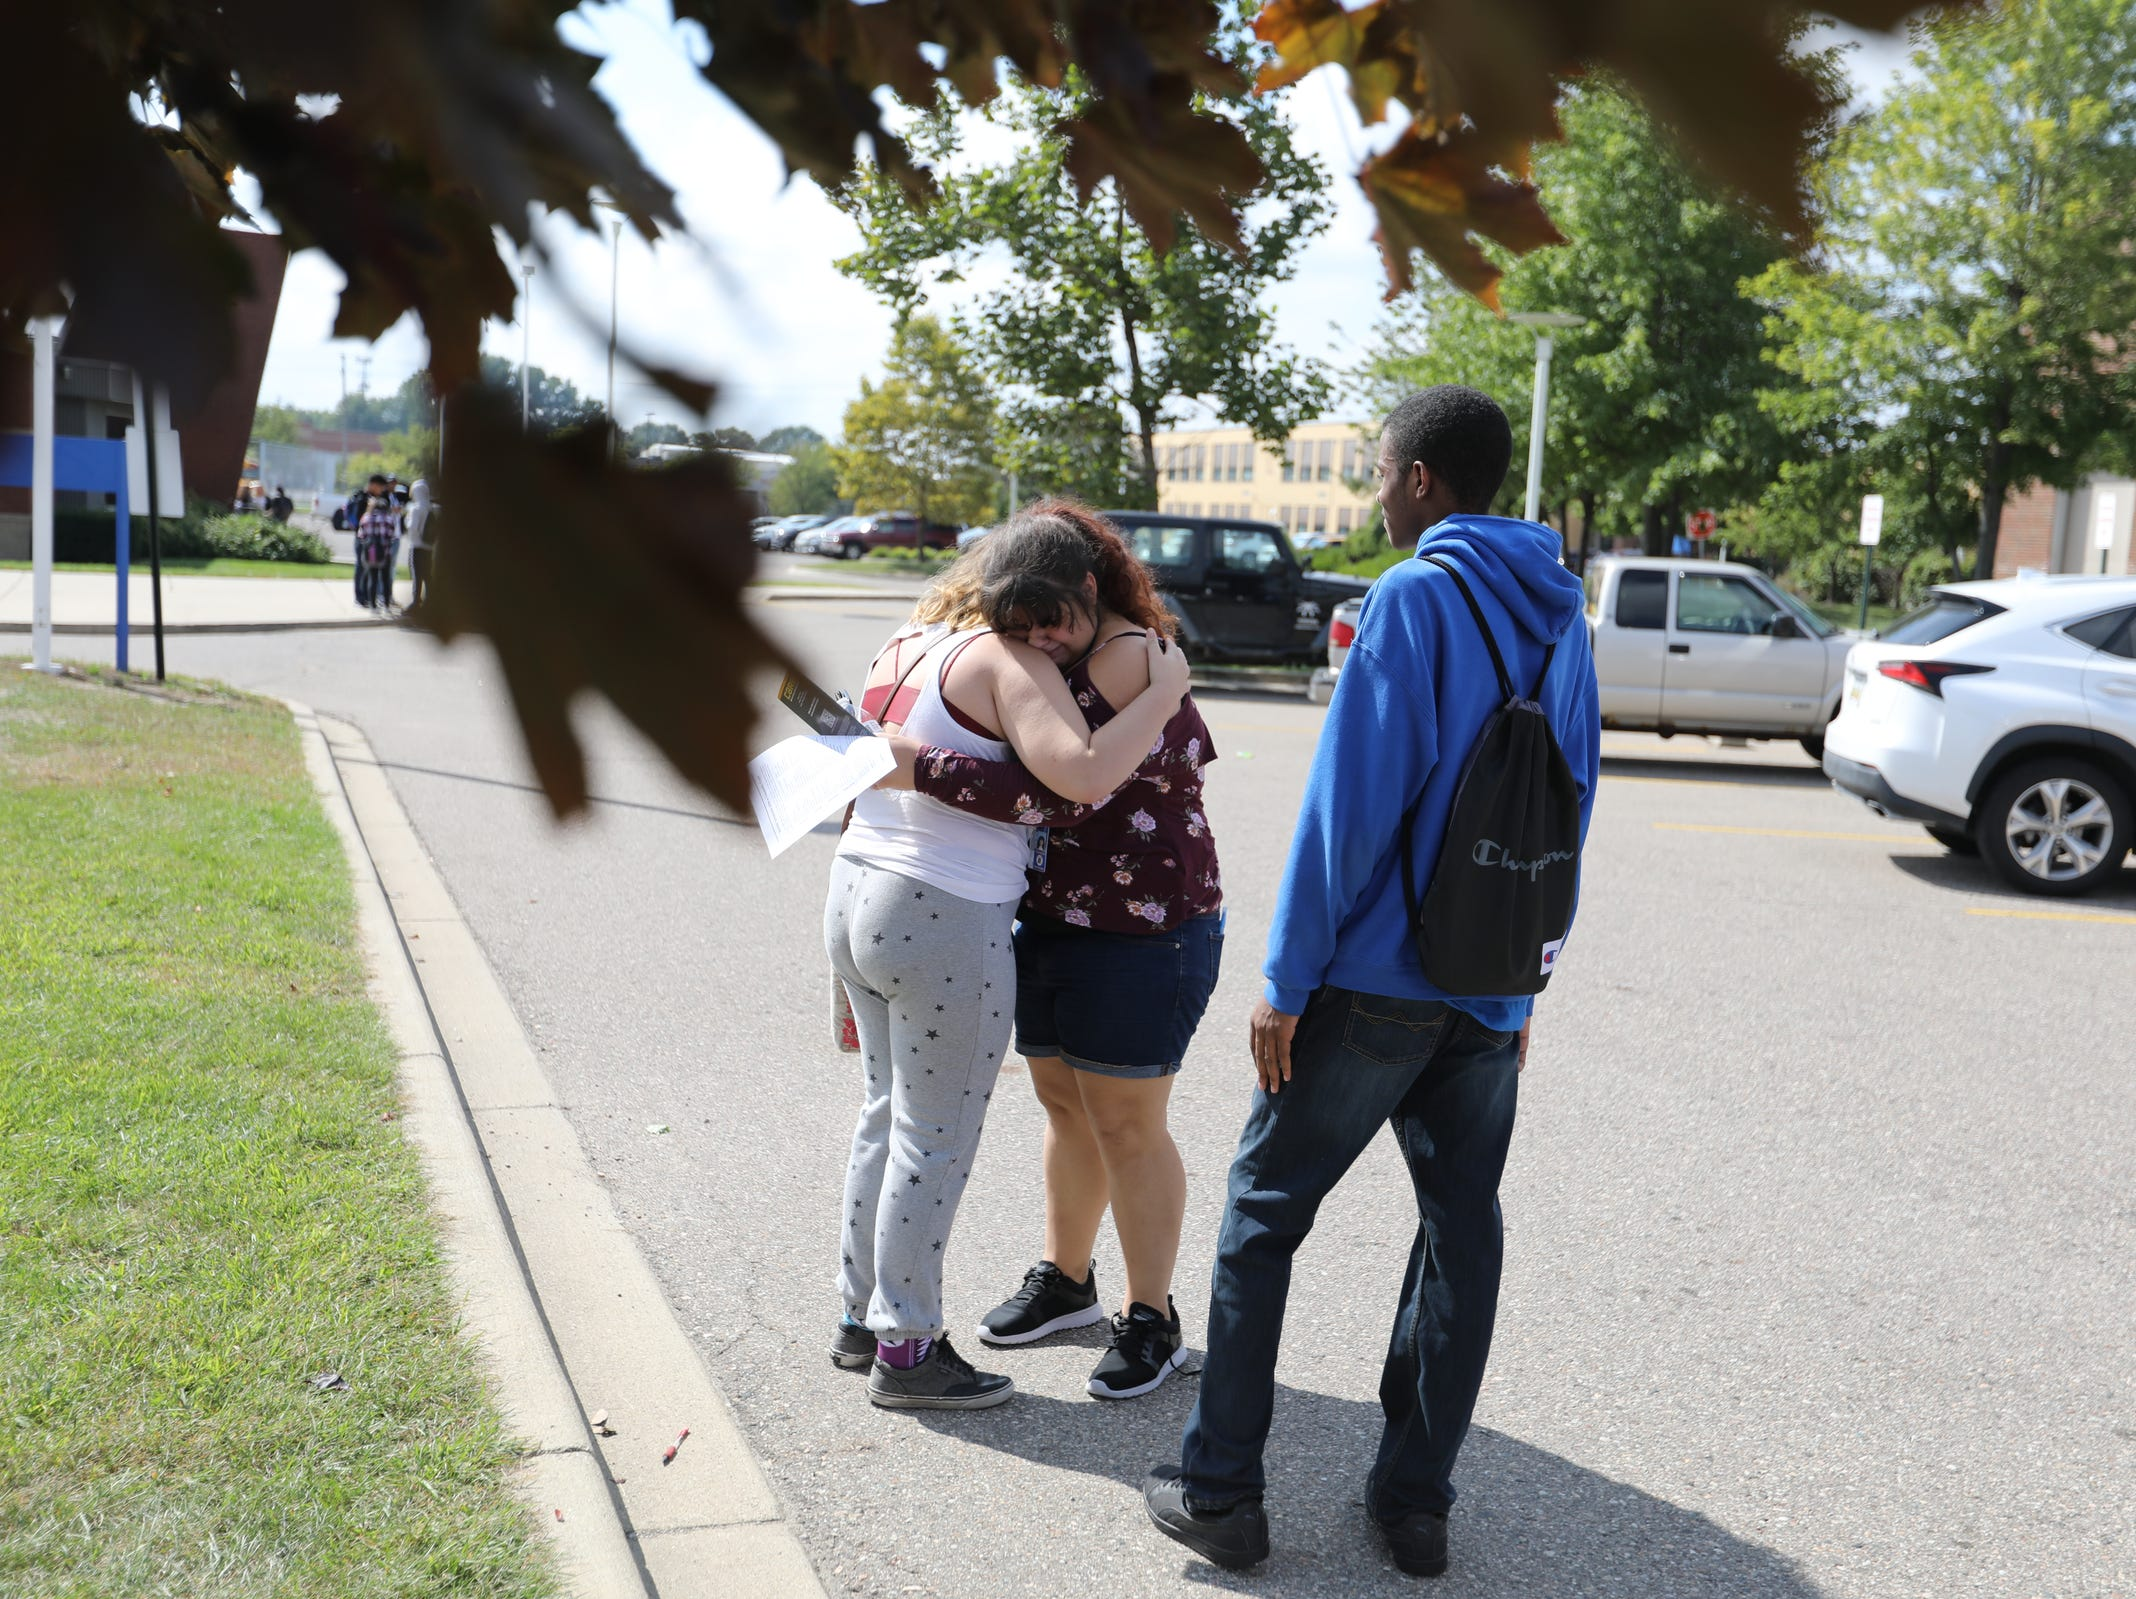 Victoria Oraczko, center, 16, of Warren is comforted by her friends after she was interviewed and released after the stabbing that occurred in her classroom at Fitzgerald High School in Warren, Mich. on Wednesday, Sept. 12, 2018